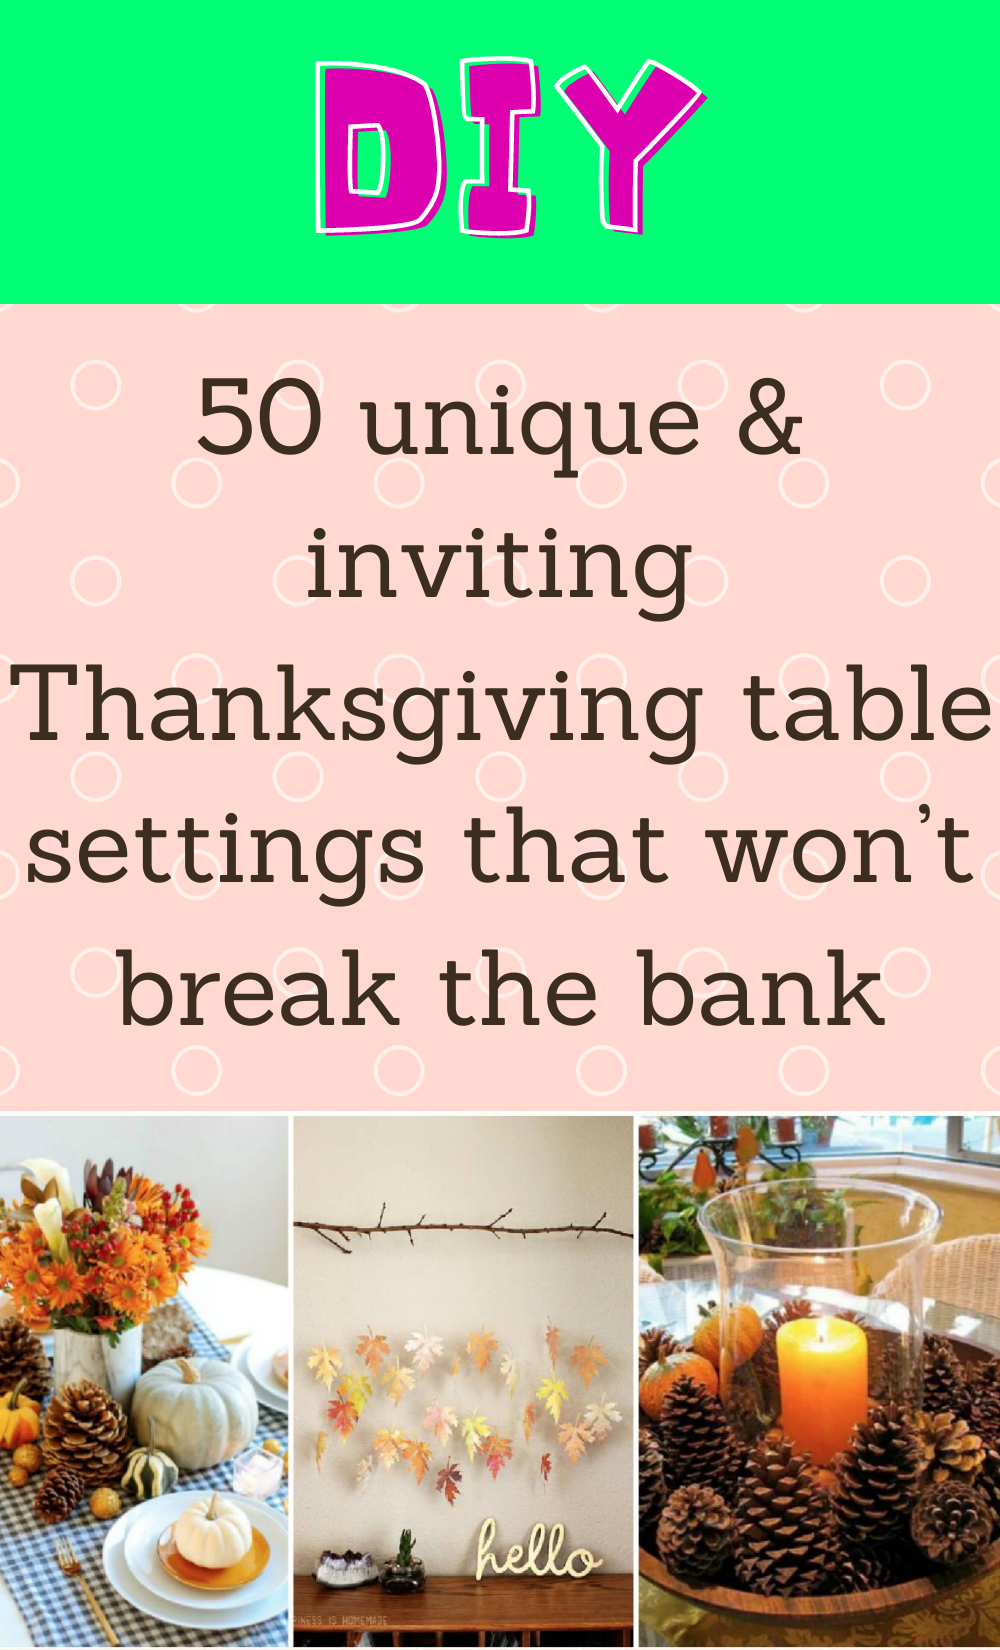 50 Unique Inviting Thanksgiving Table Settings That Won T Break The Bank In 2020 Diy Life Hacks Diy Holiday Diy Life